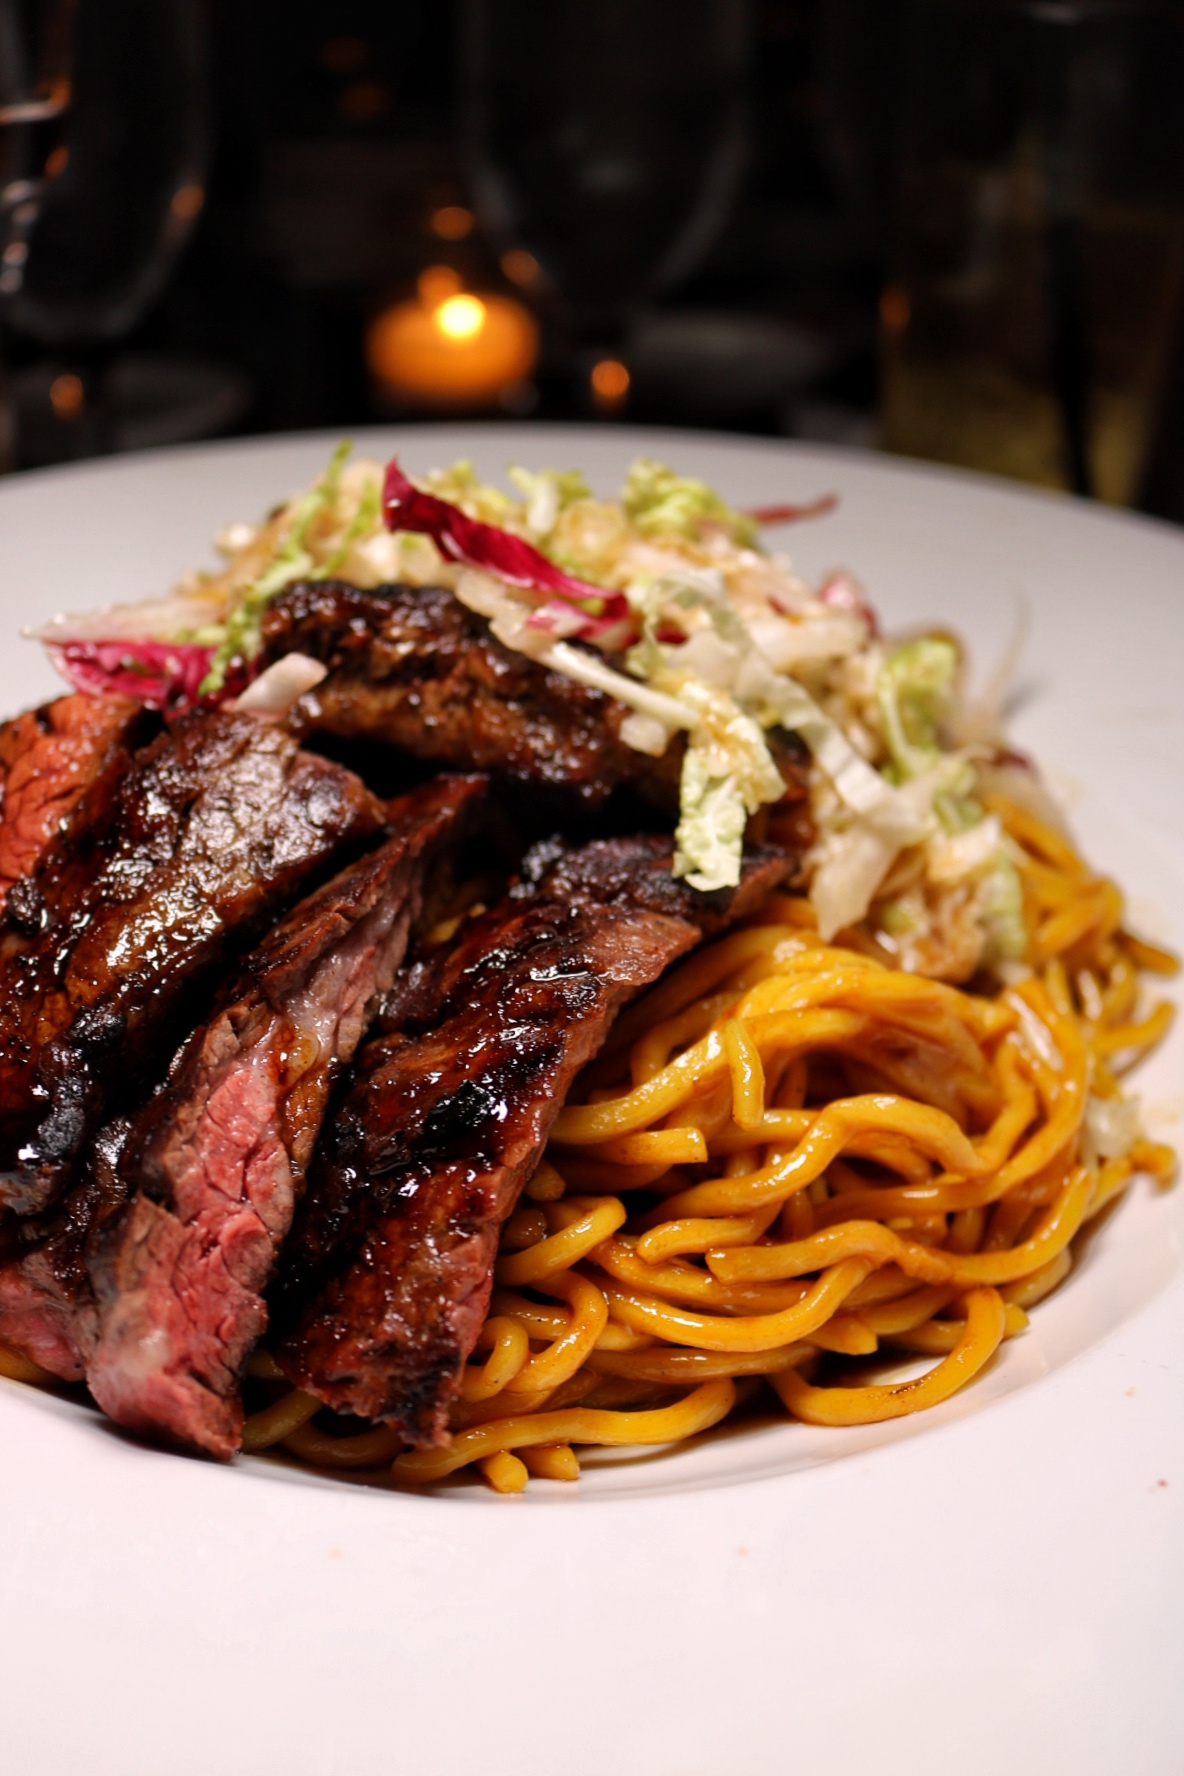 Red Lantern - Steak Teriyaki Noodles